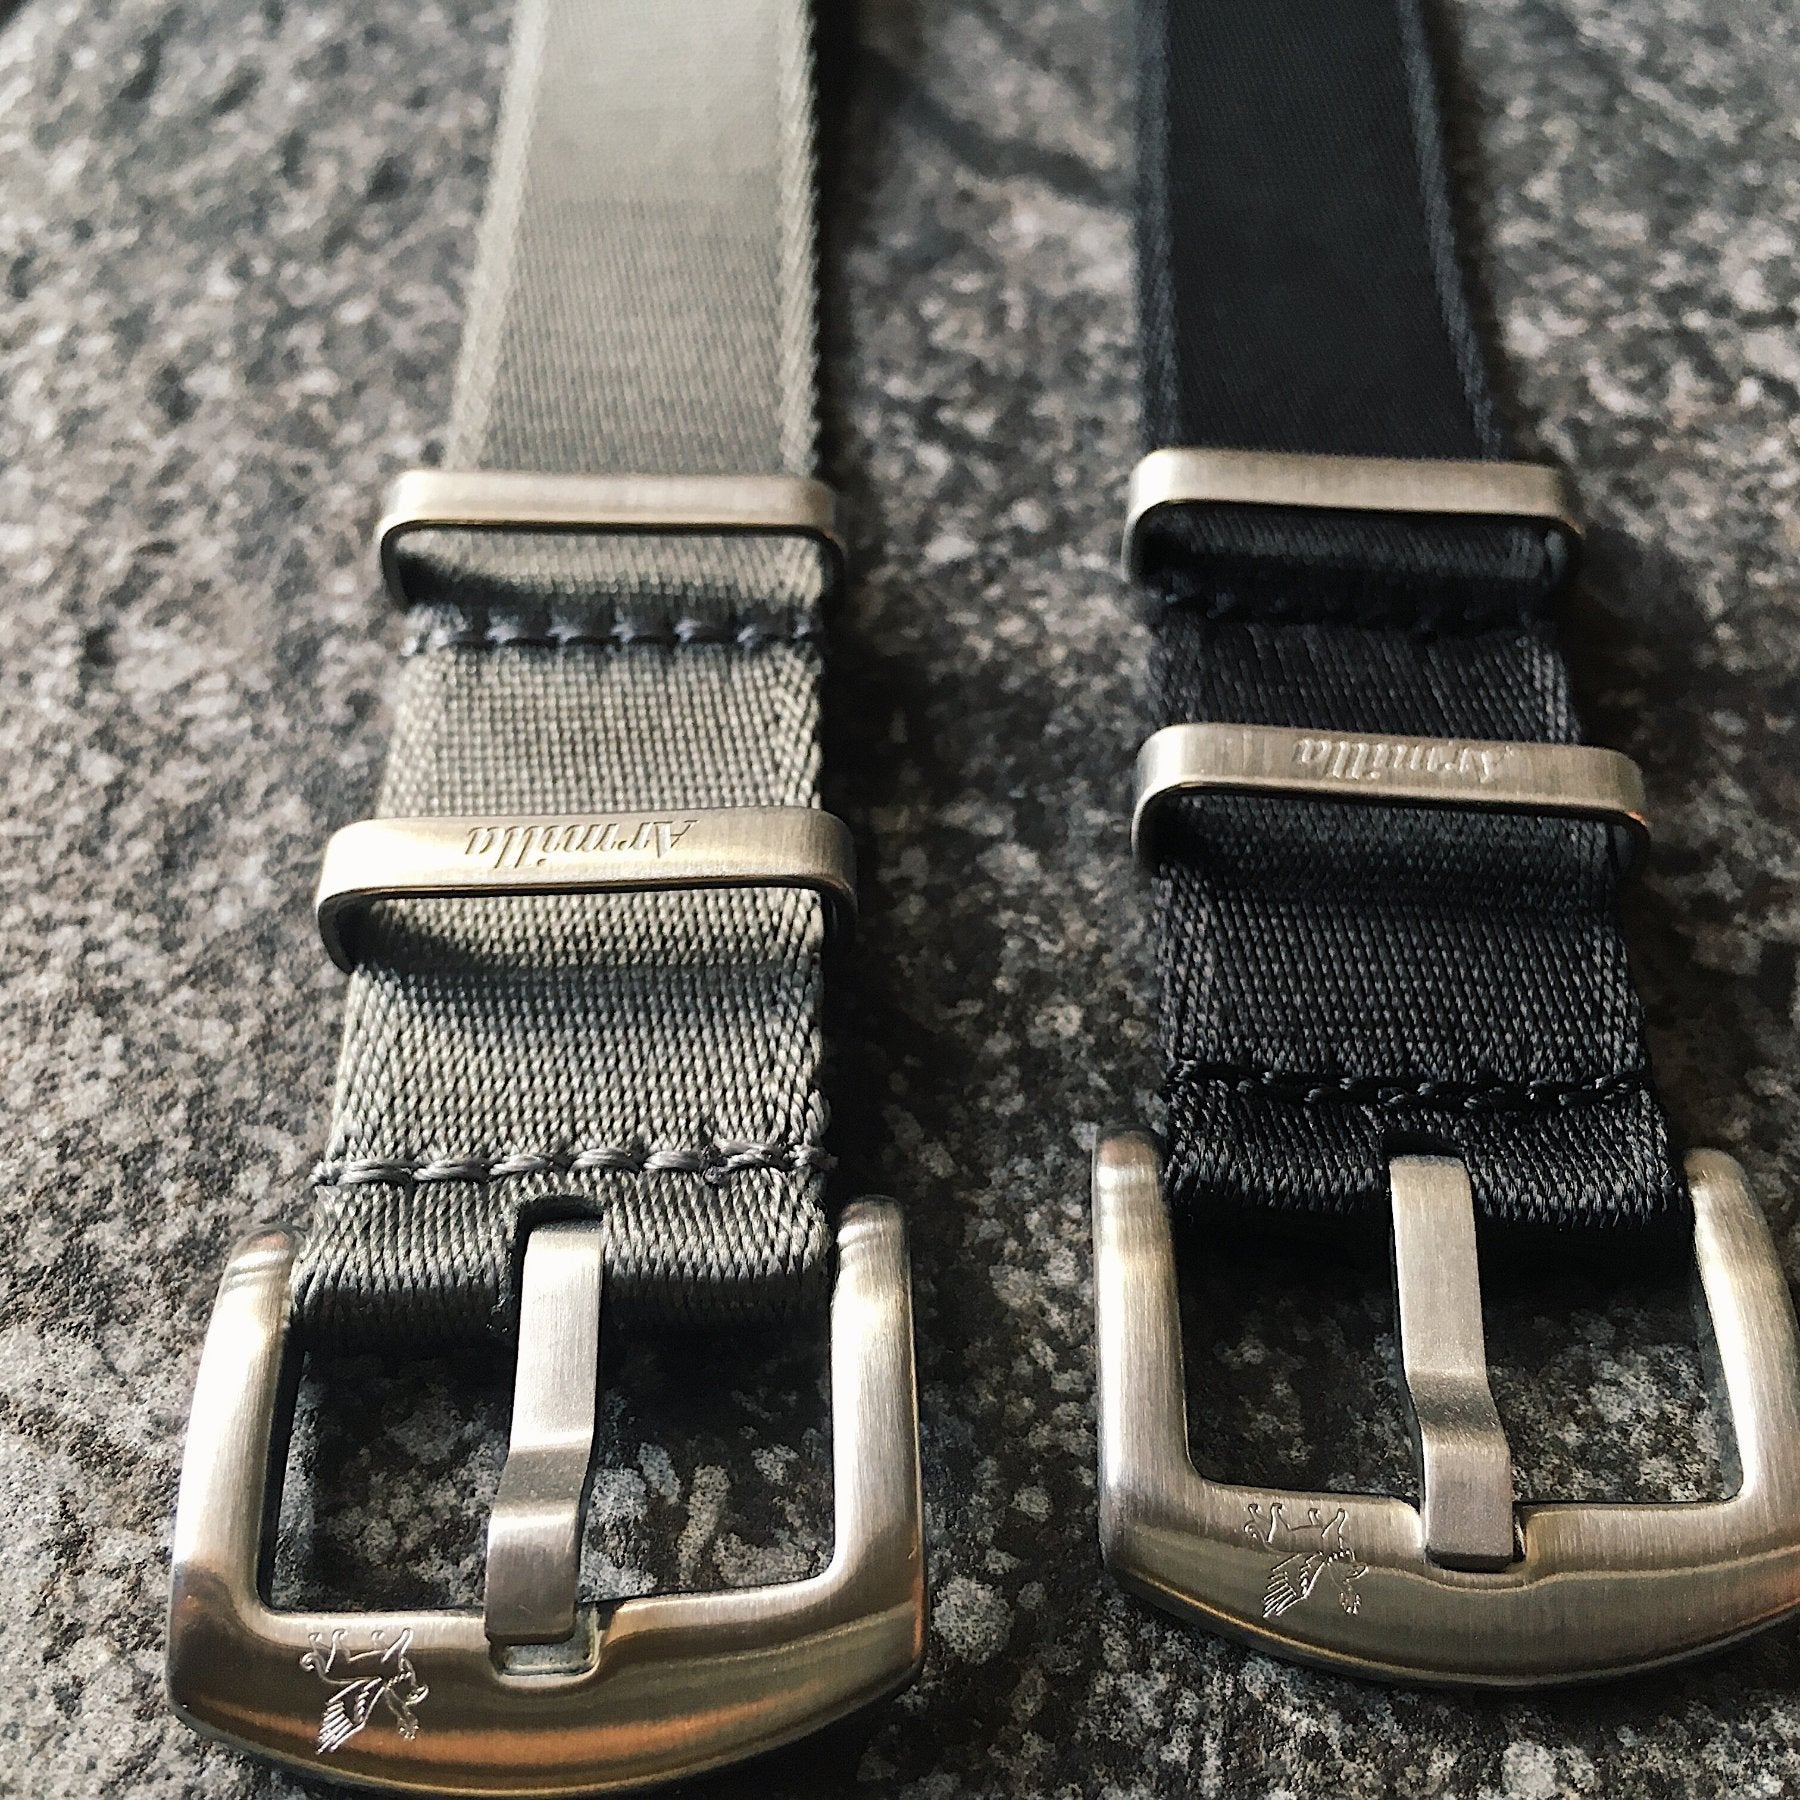 Premium Quality Hardware on Armilla G10 NATO Watch Straps / Bands